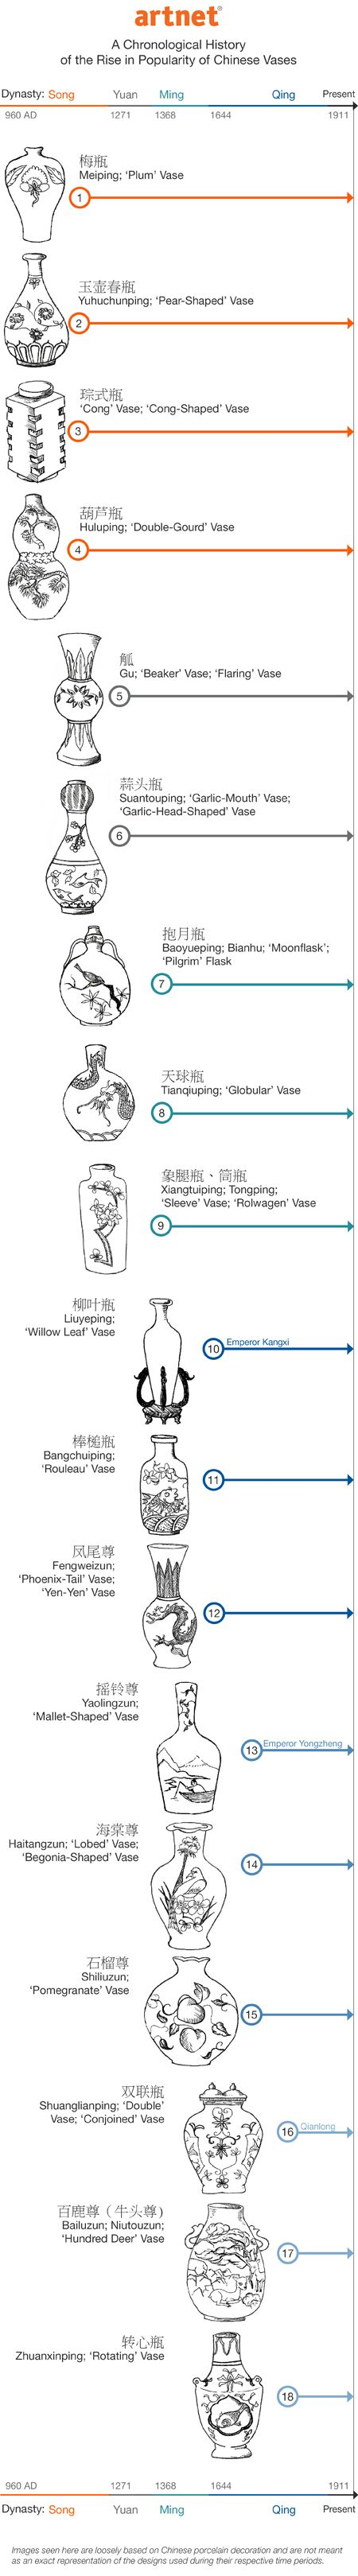 Chinese Vase infographic | A Beginner\u0027s Guide to Chinese Porcelain ...